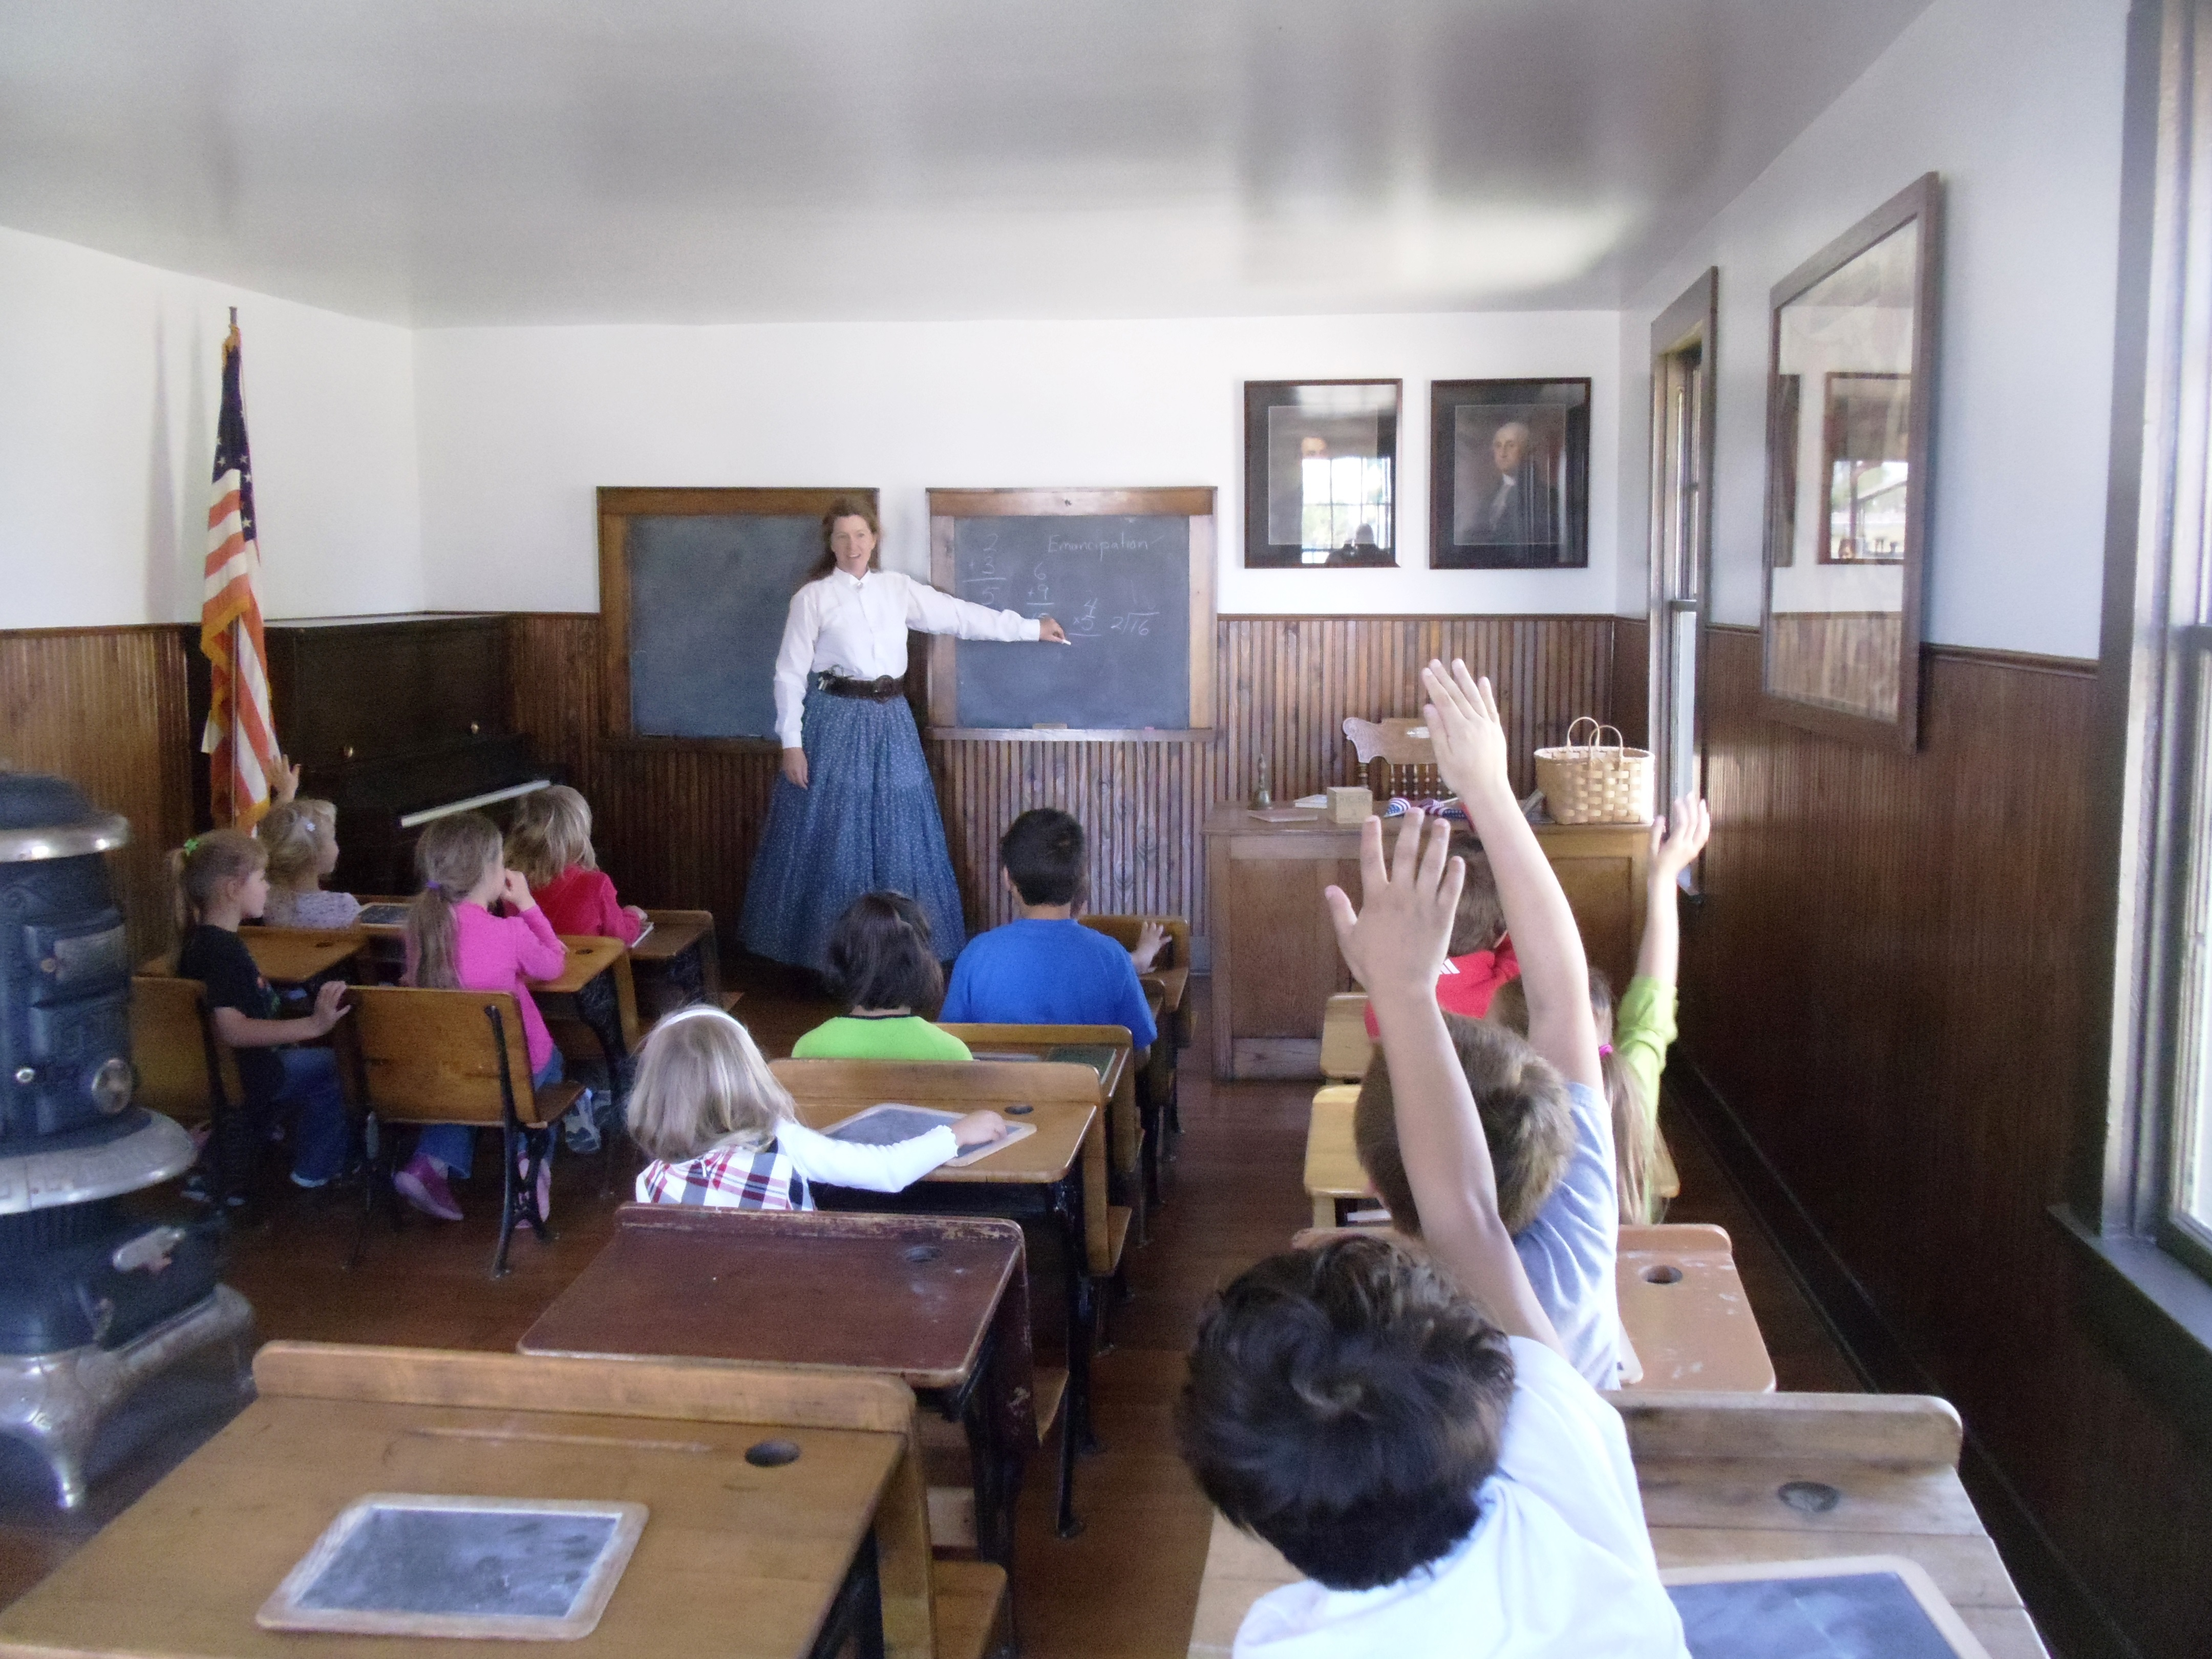 The historic Whitehall Schoolhouse offers students the opportunity to experience learning in a historic classroom with a teacher in period costume.